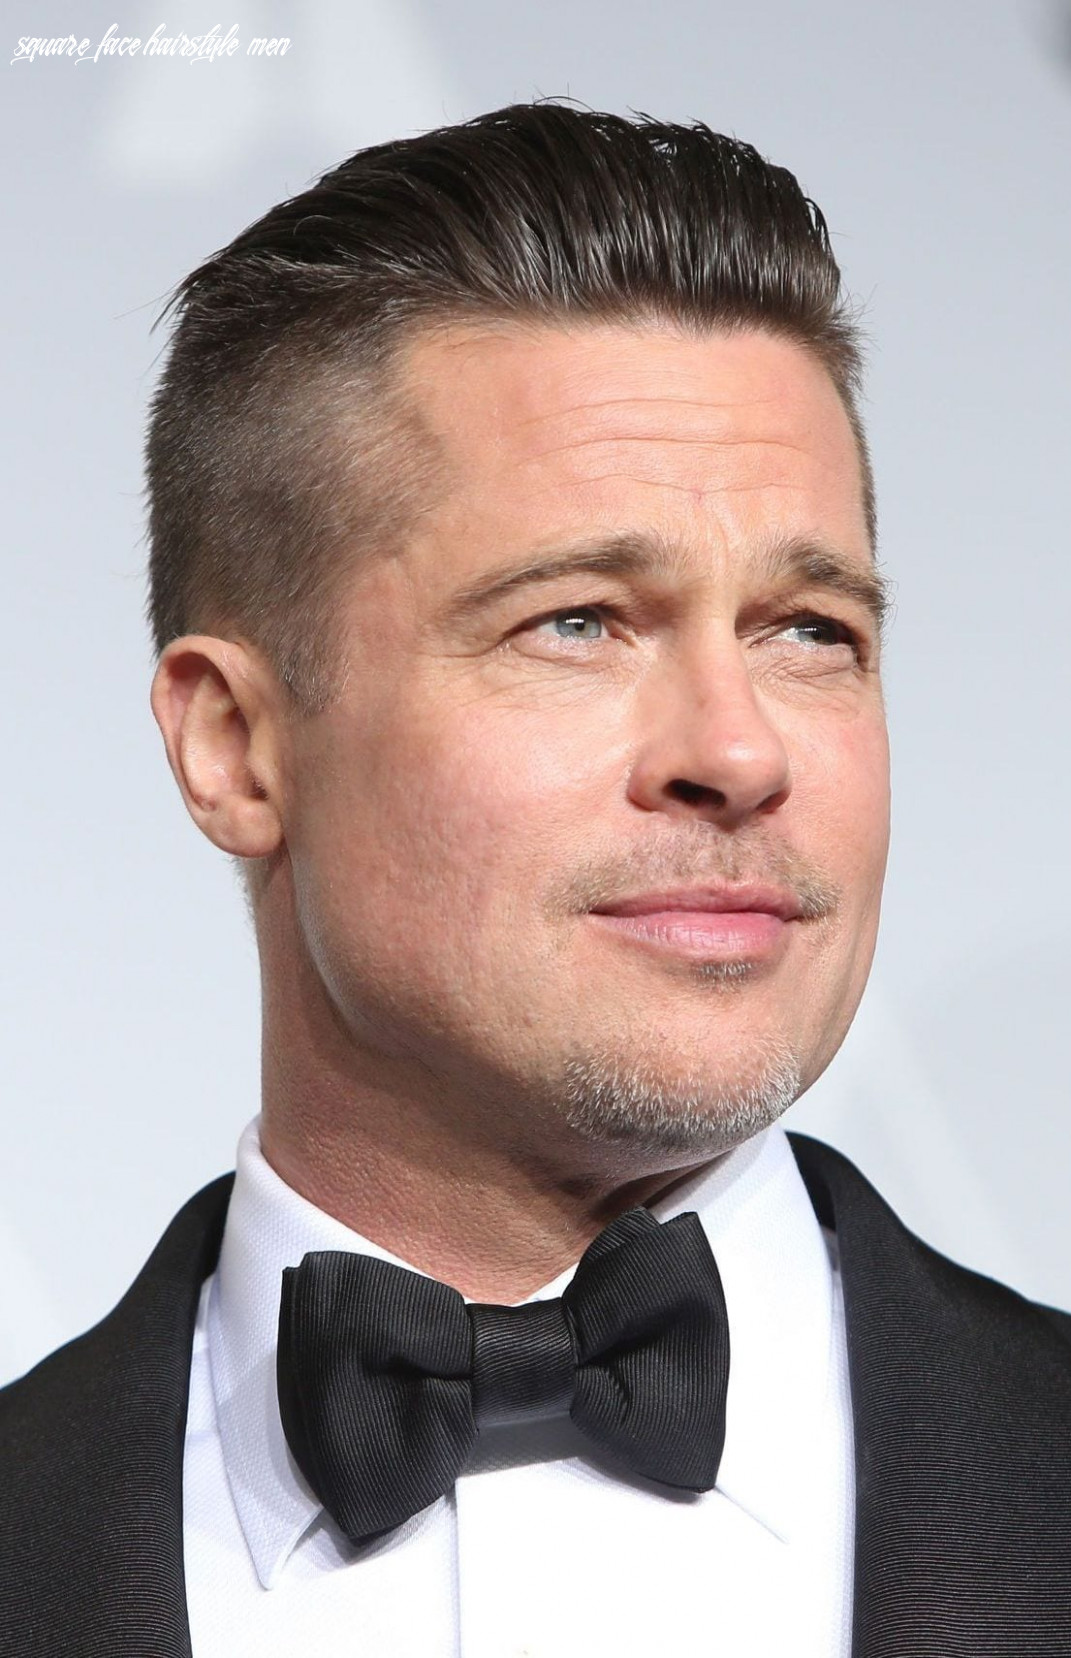 Top 8 elegant haircuts for guys with square faces square face hairstyle men